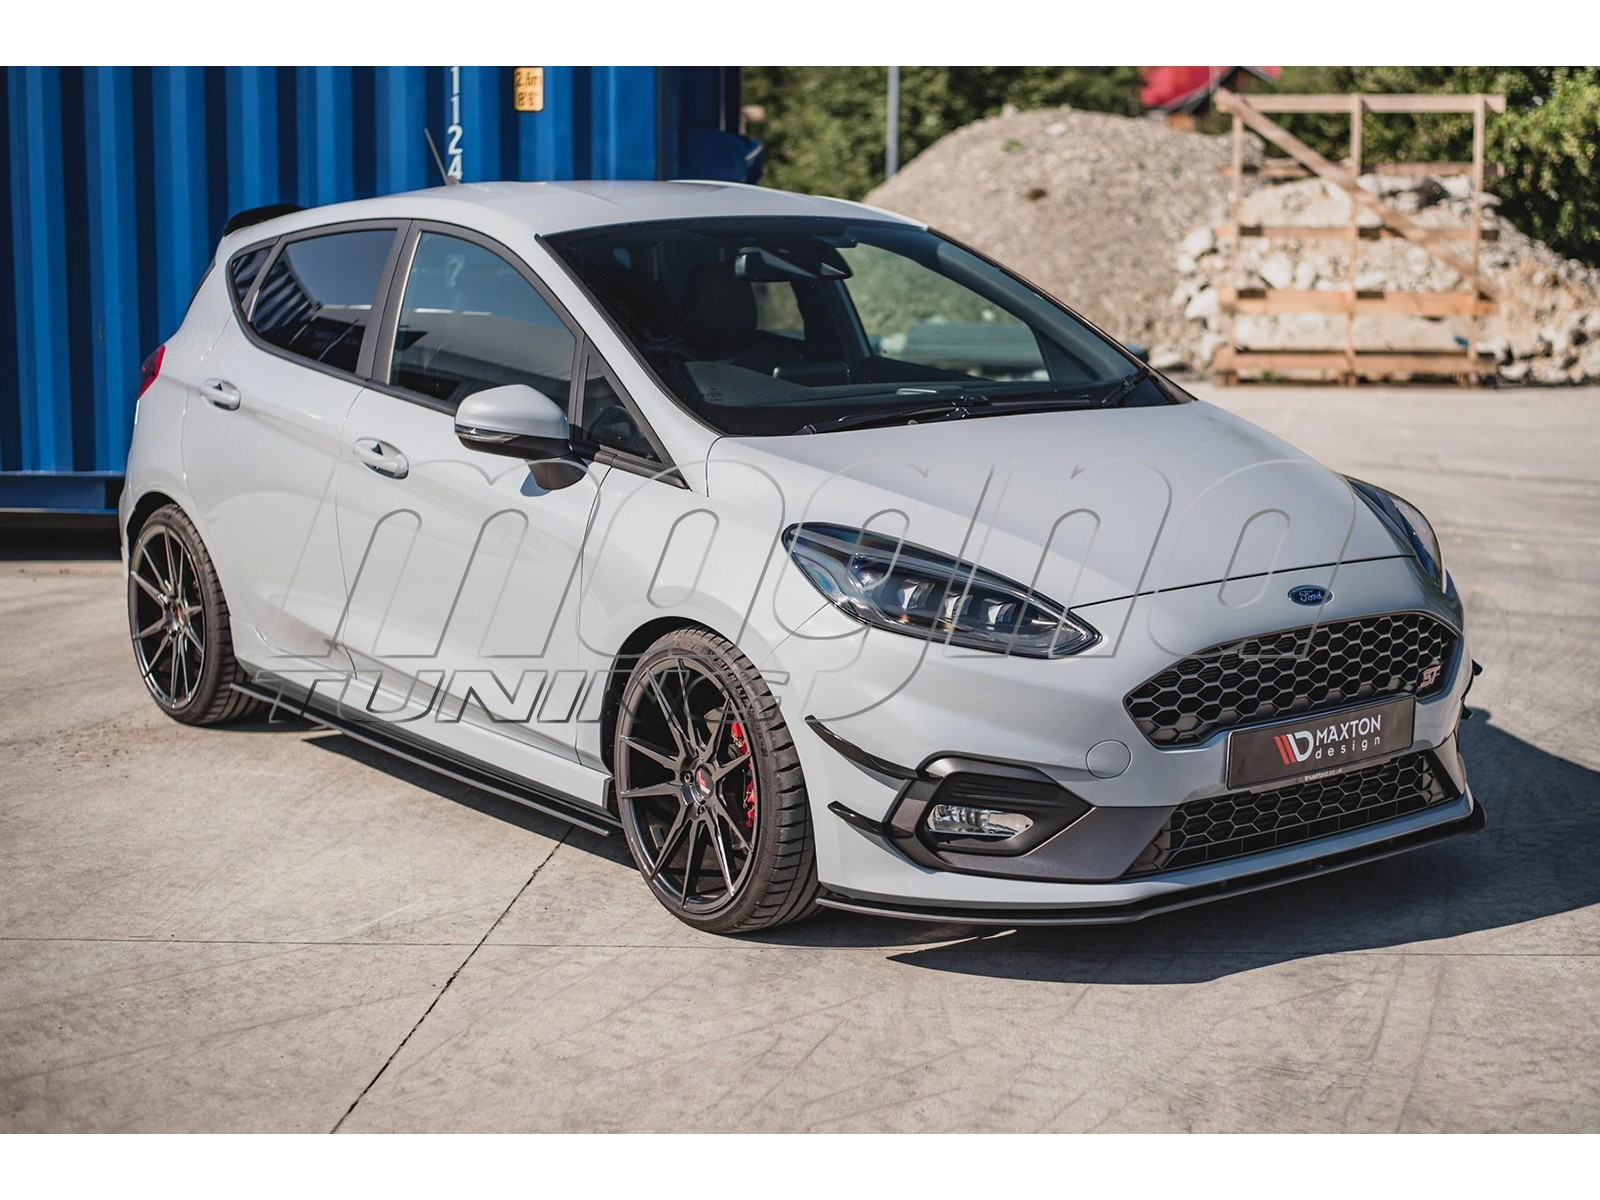 Ford Fiesta MK8 MaxStyle Side Skirt Extensions